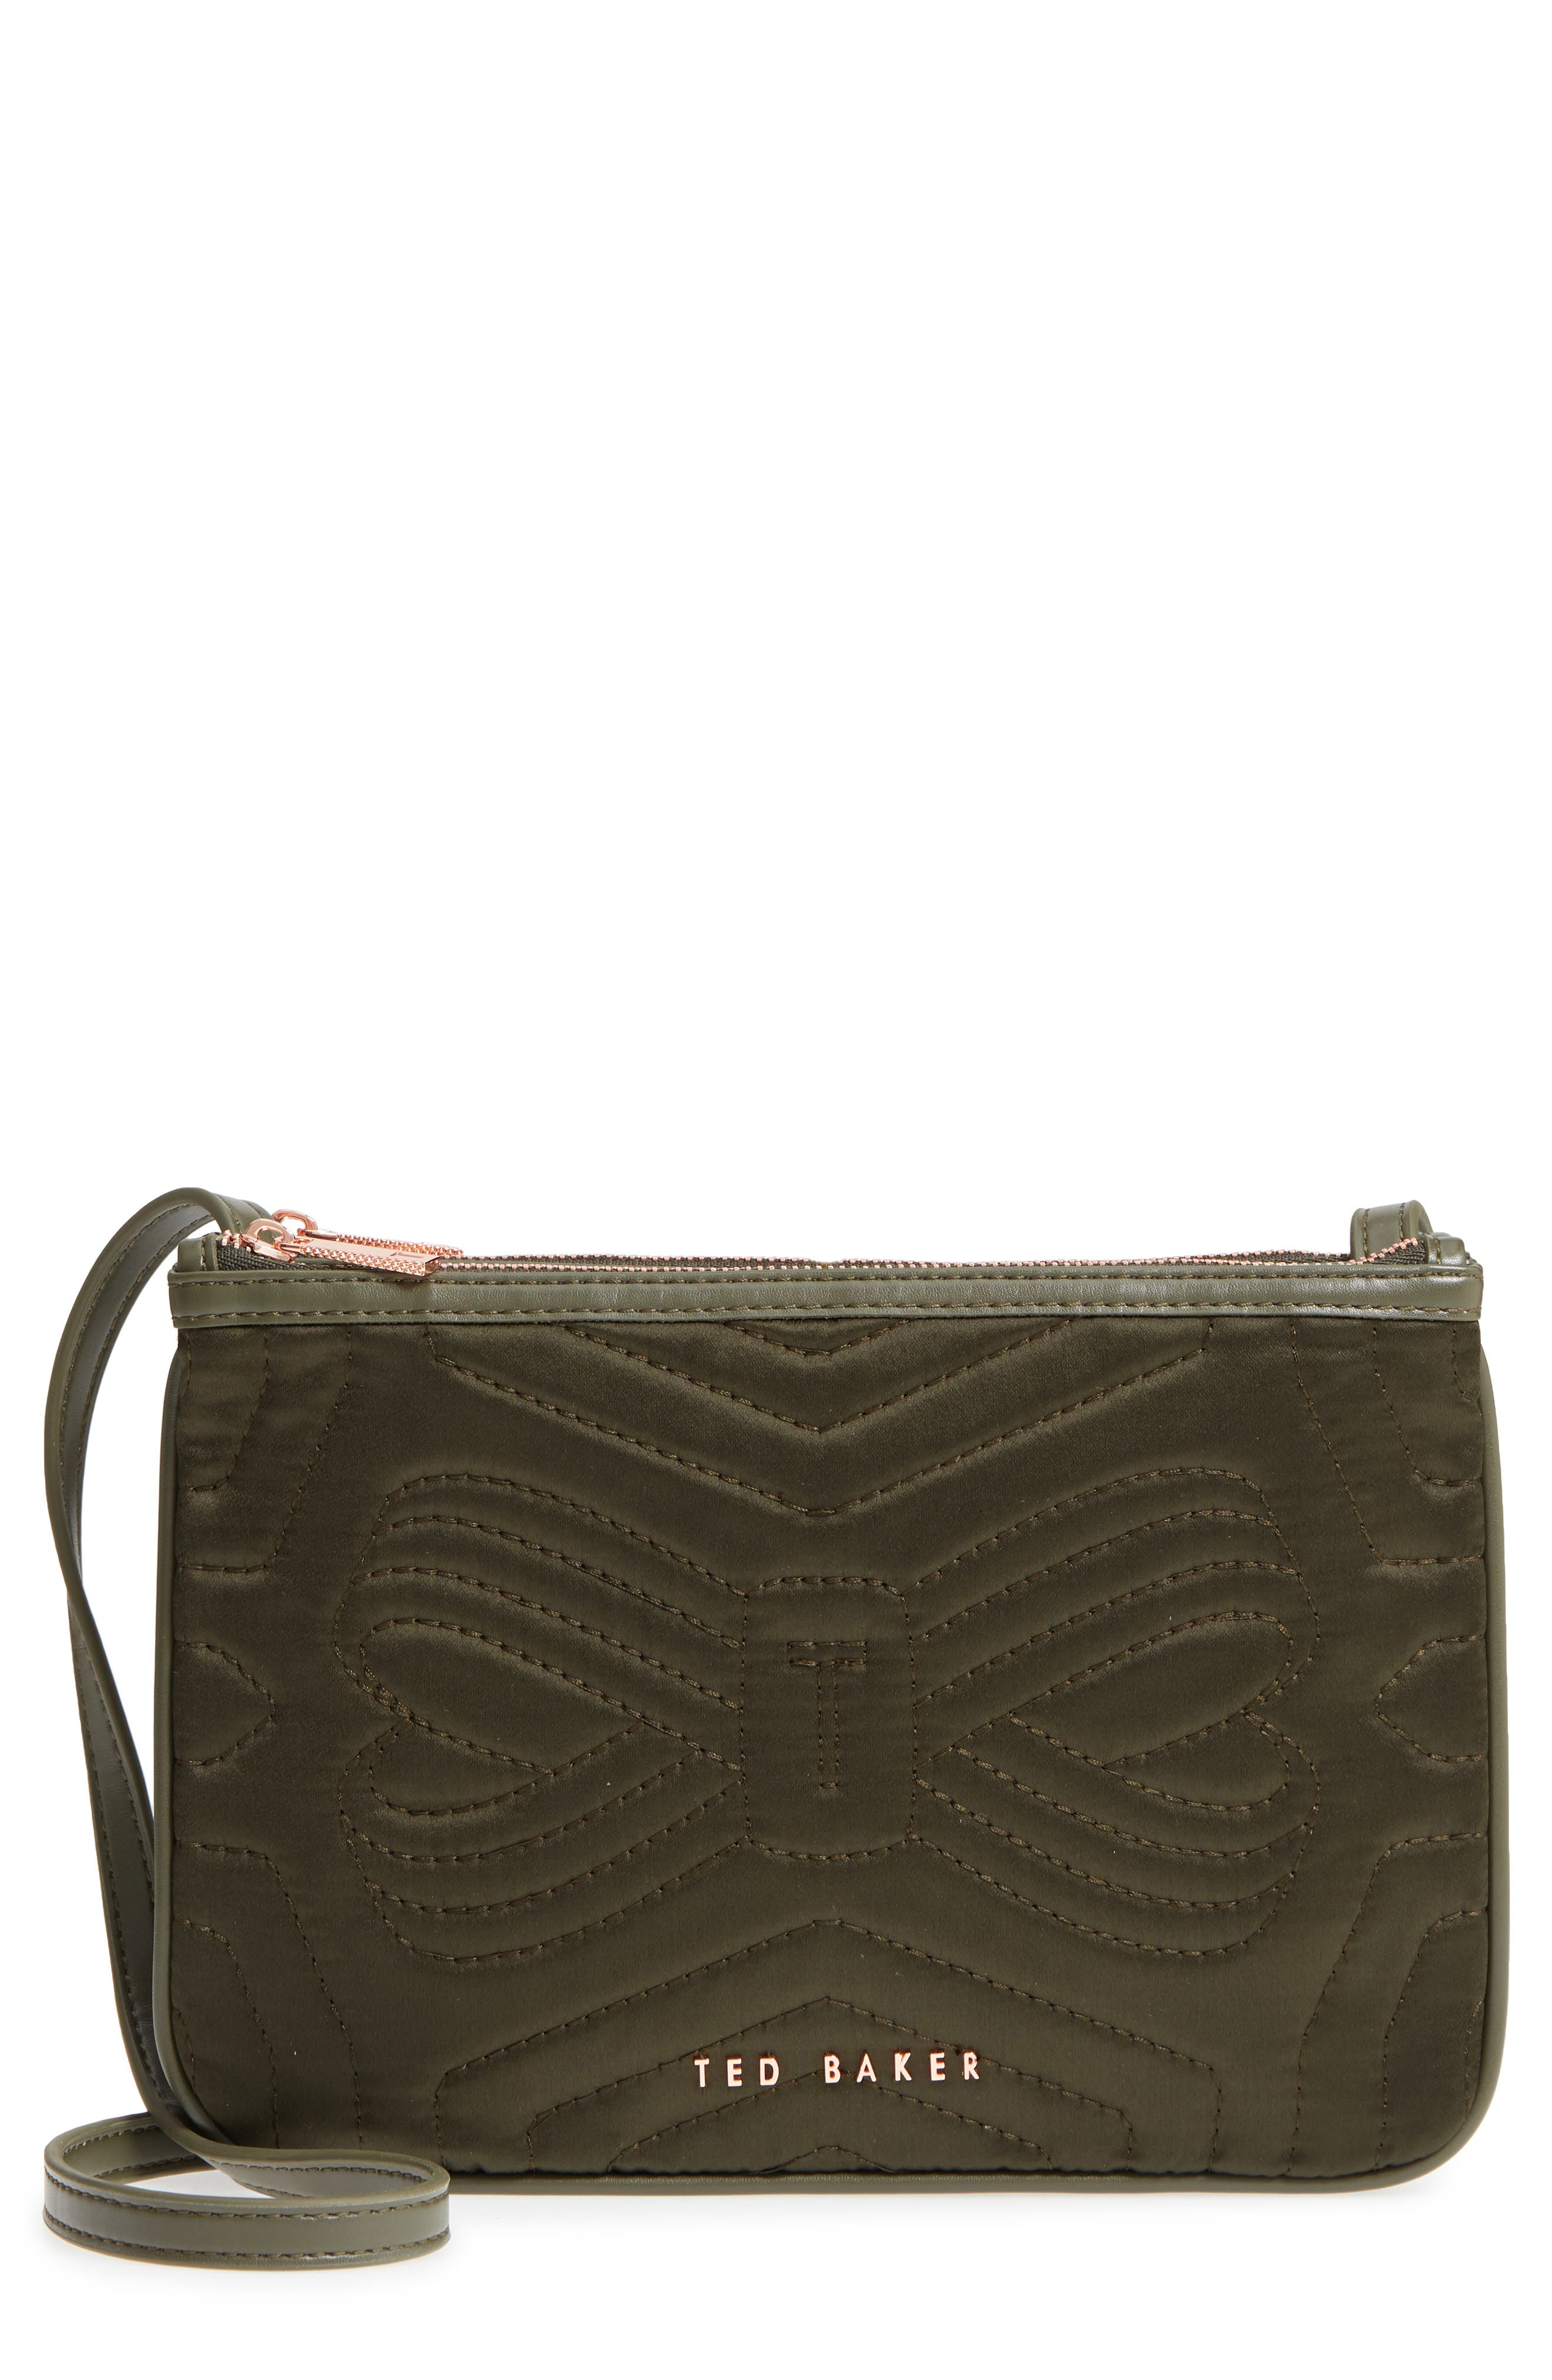 Ted Baker London Quilted Bow Crossbody Bag